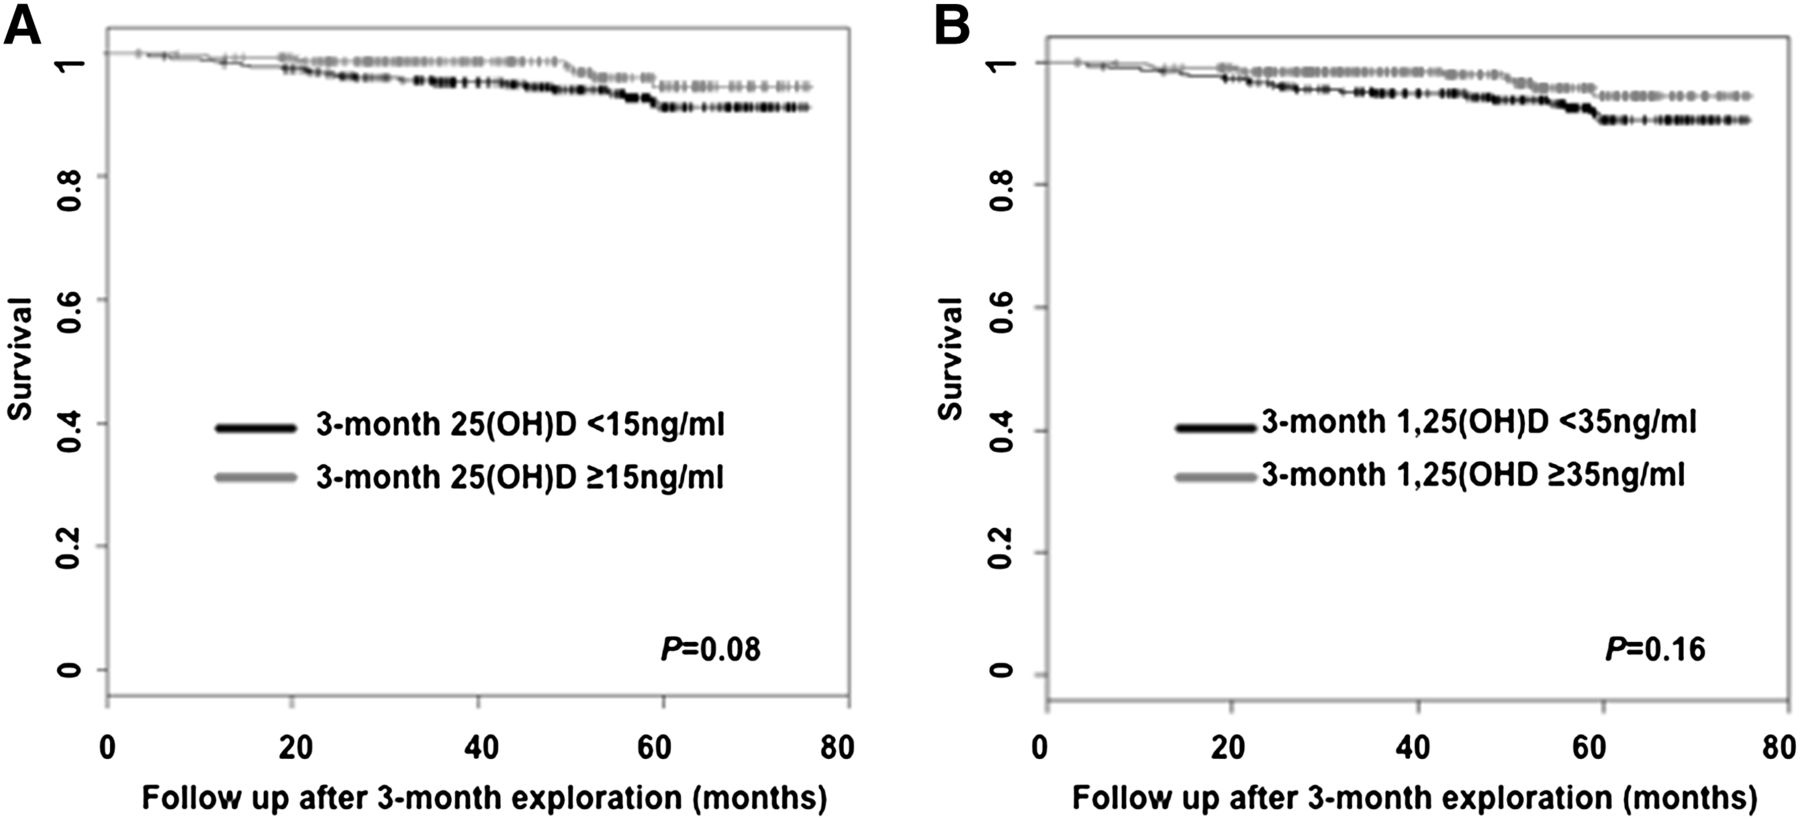 Vitamin D Status and Outcomes After Renal Transplantation